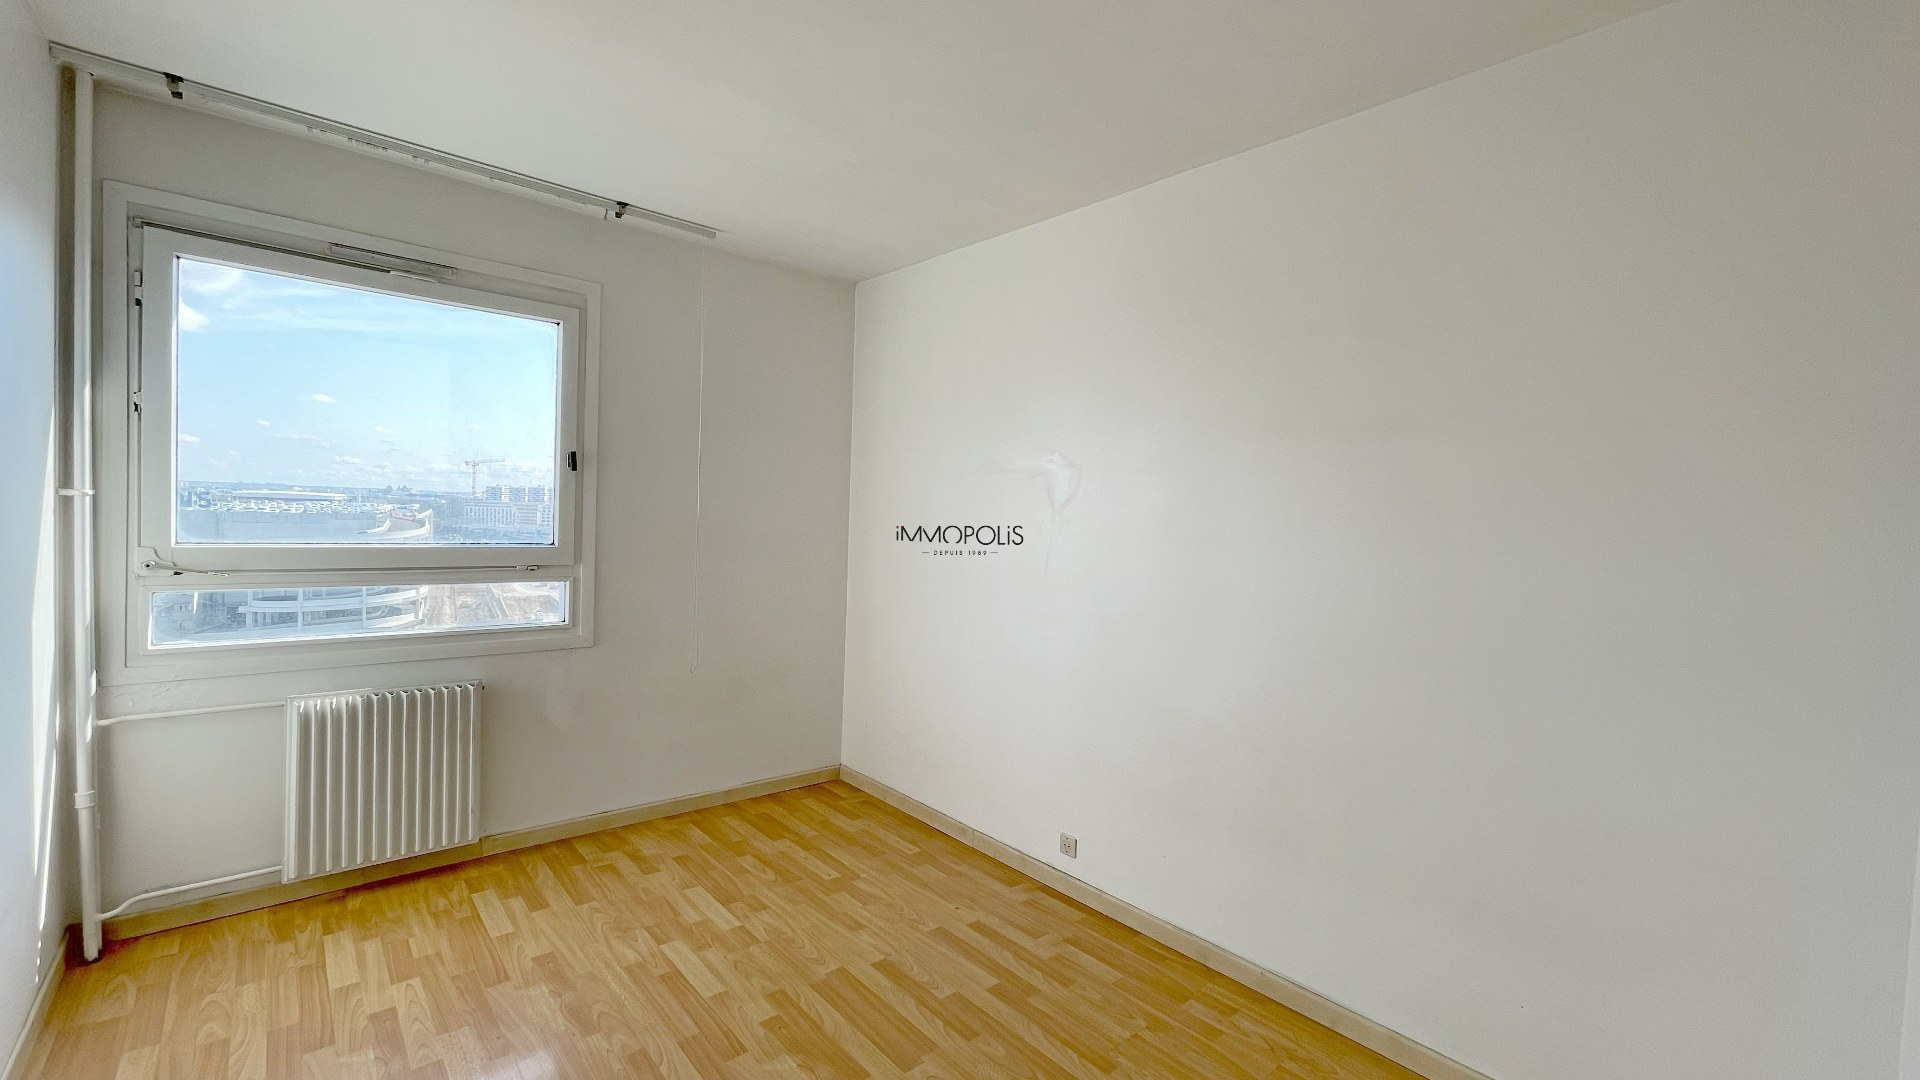 3 room apartment with unobstructed view of 63.45m2 sold with a box! 5